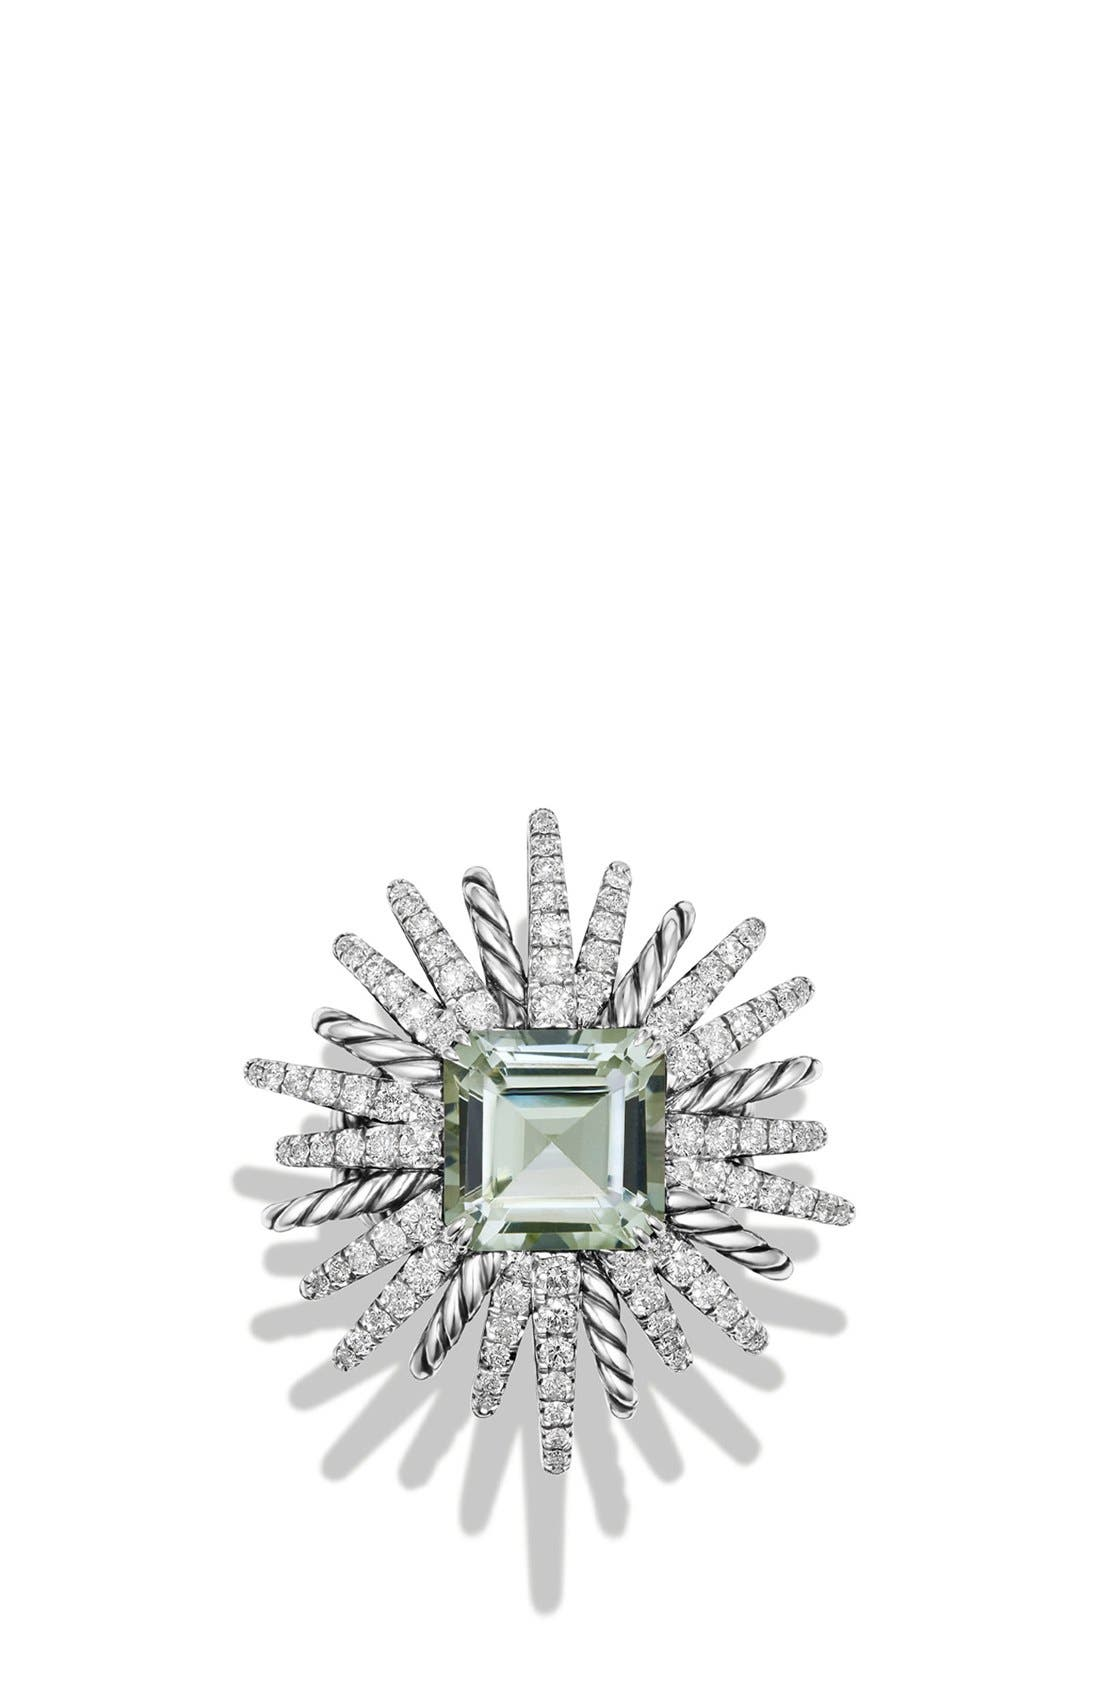 'Starburst' Ring with Semiprecious Stone and Diamonds,                             Alternate thumbnail 3, color,                             PRASIOLITE